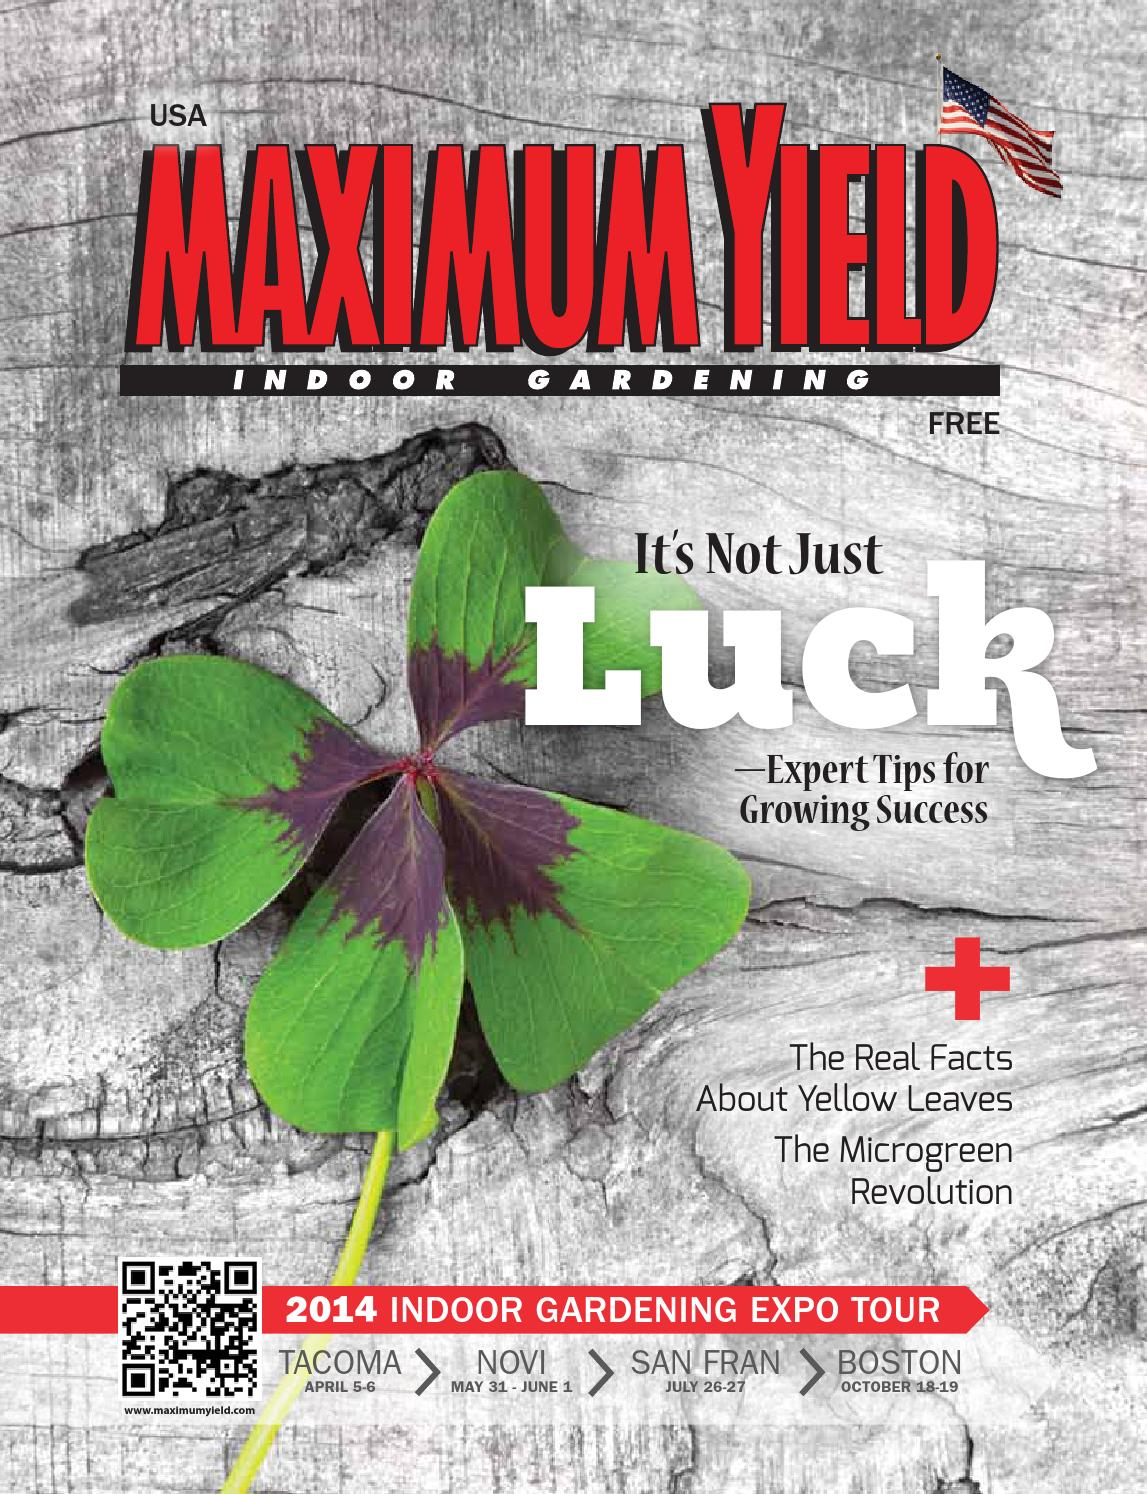 Maximum yield usa march 2014 by maximum yield issuu for Indoor gardening expo 2014